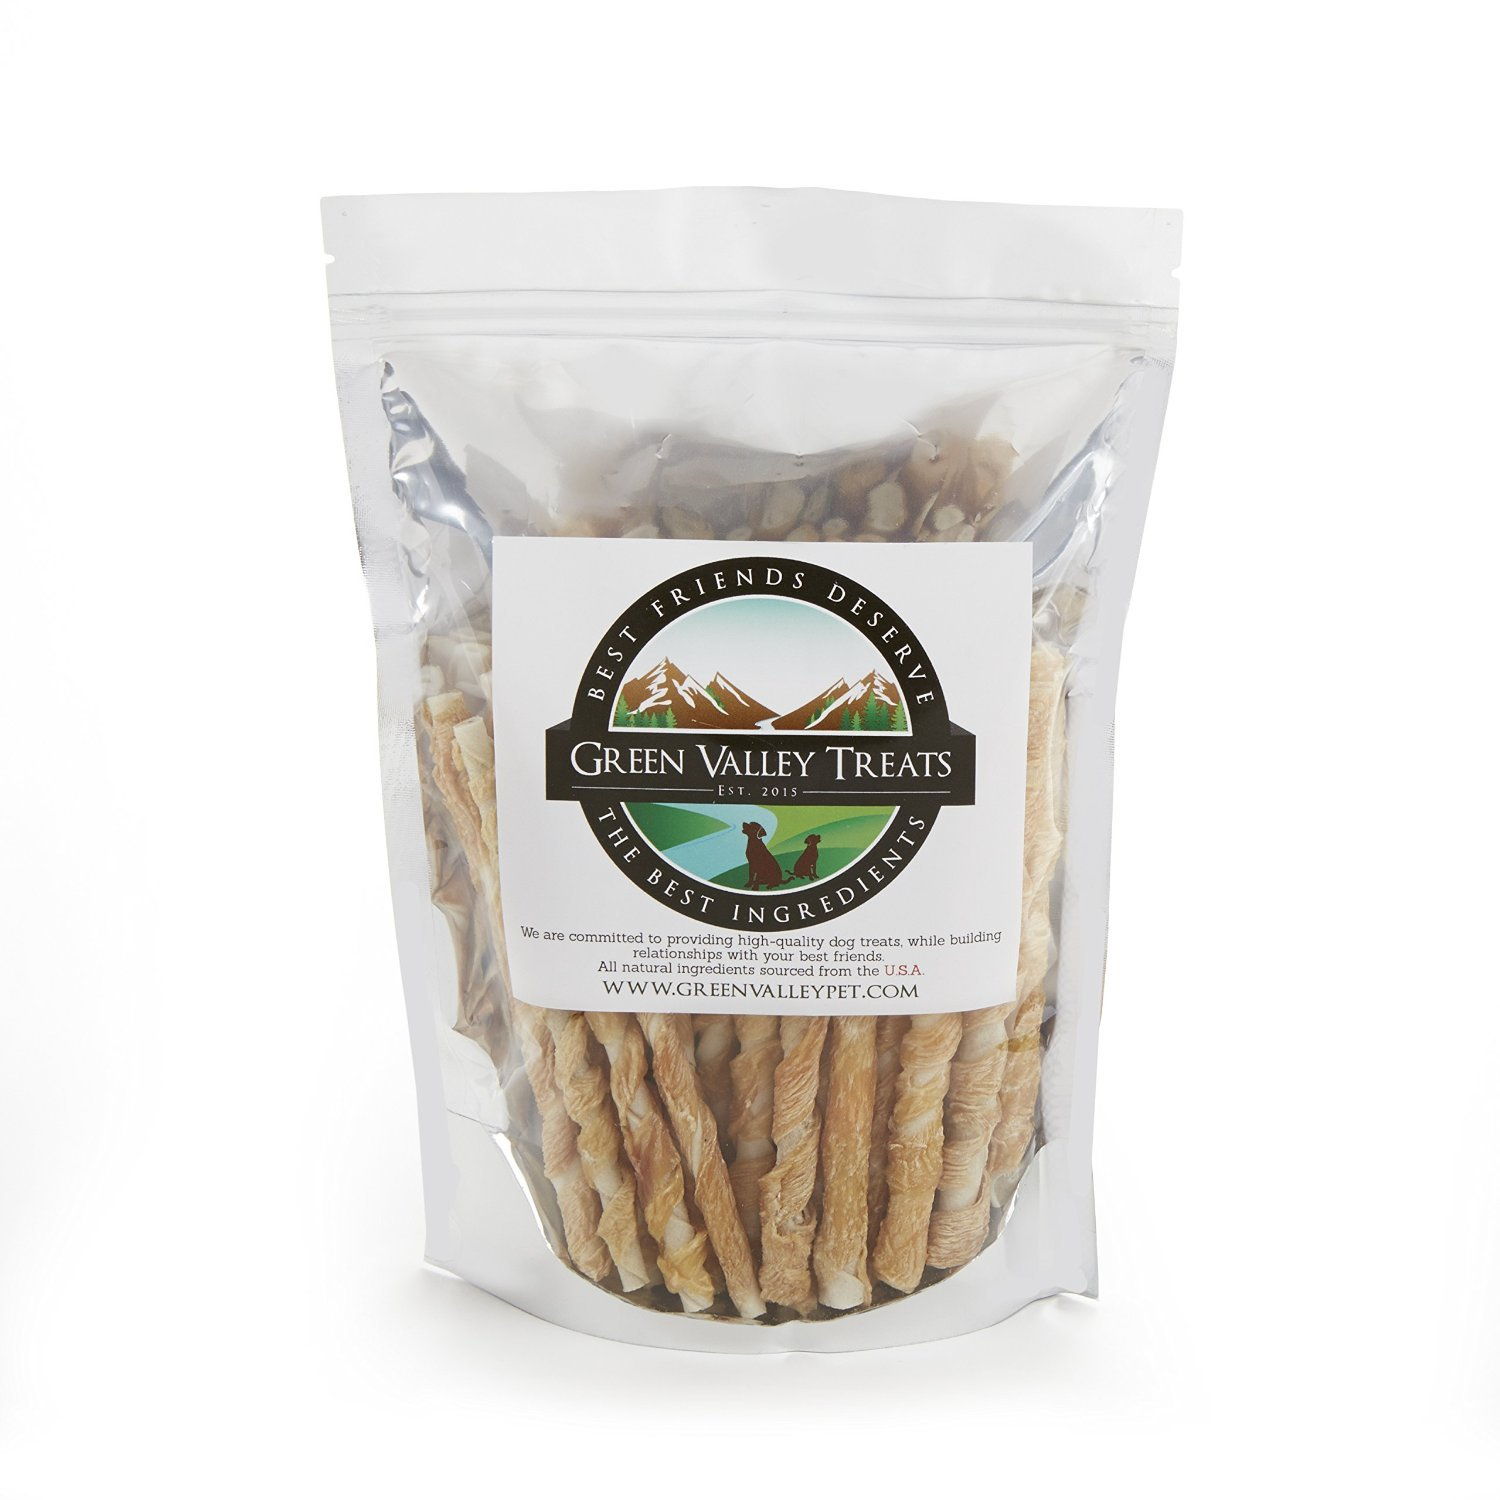 Green Valley Treats Rawhide Chews with Real Chicken, Made in The USA Only, Natural Gluten Free Dog Treats for Small Dogs, Perfect Dog Training Treats by Green Valley Treats